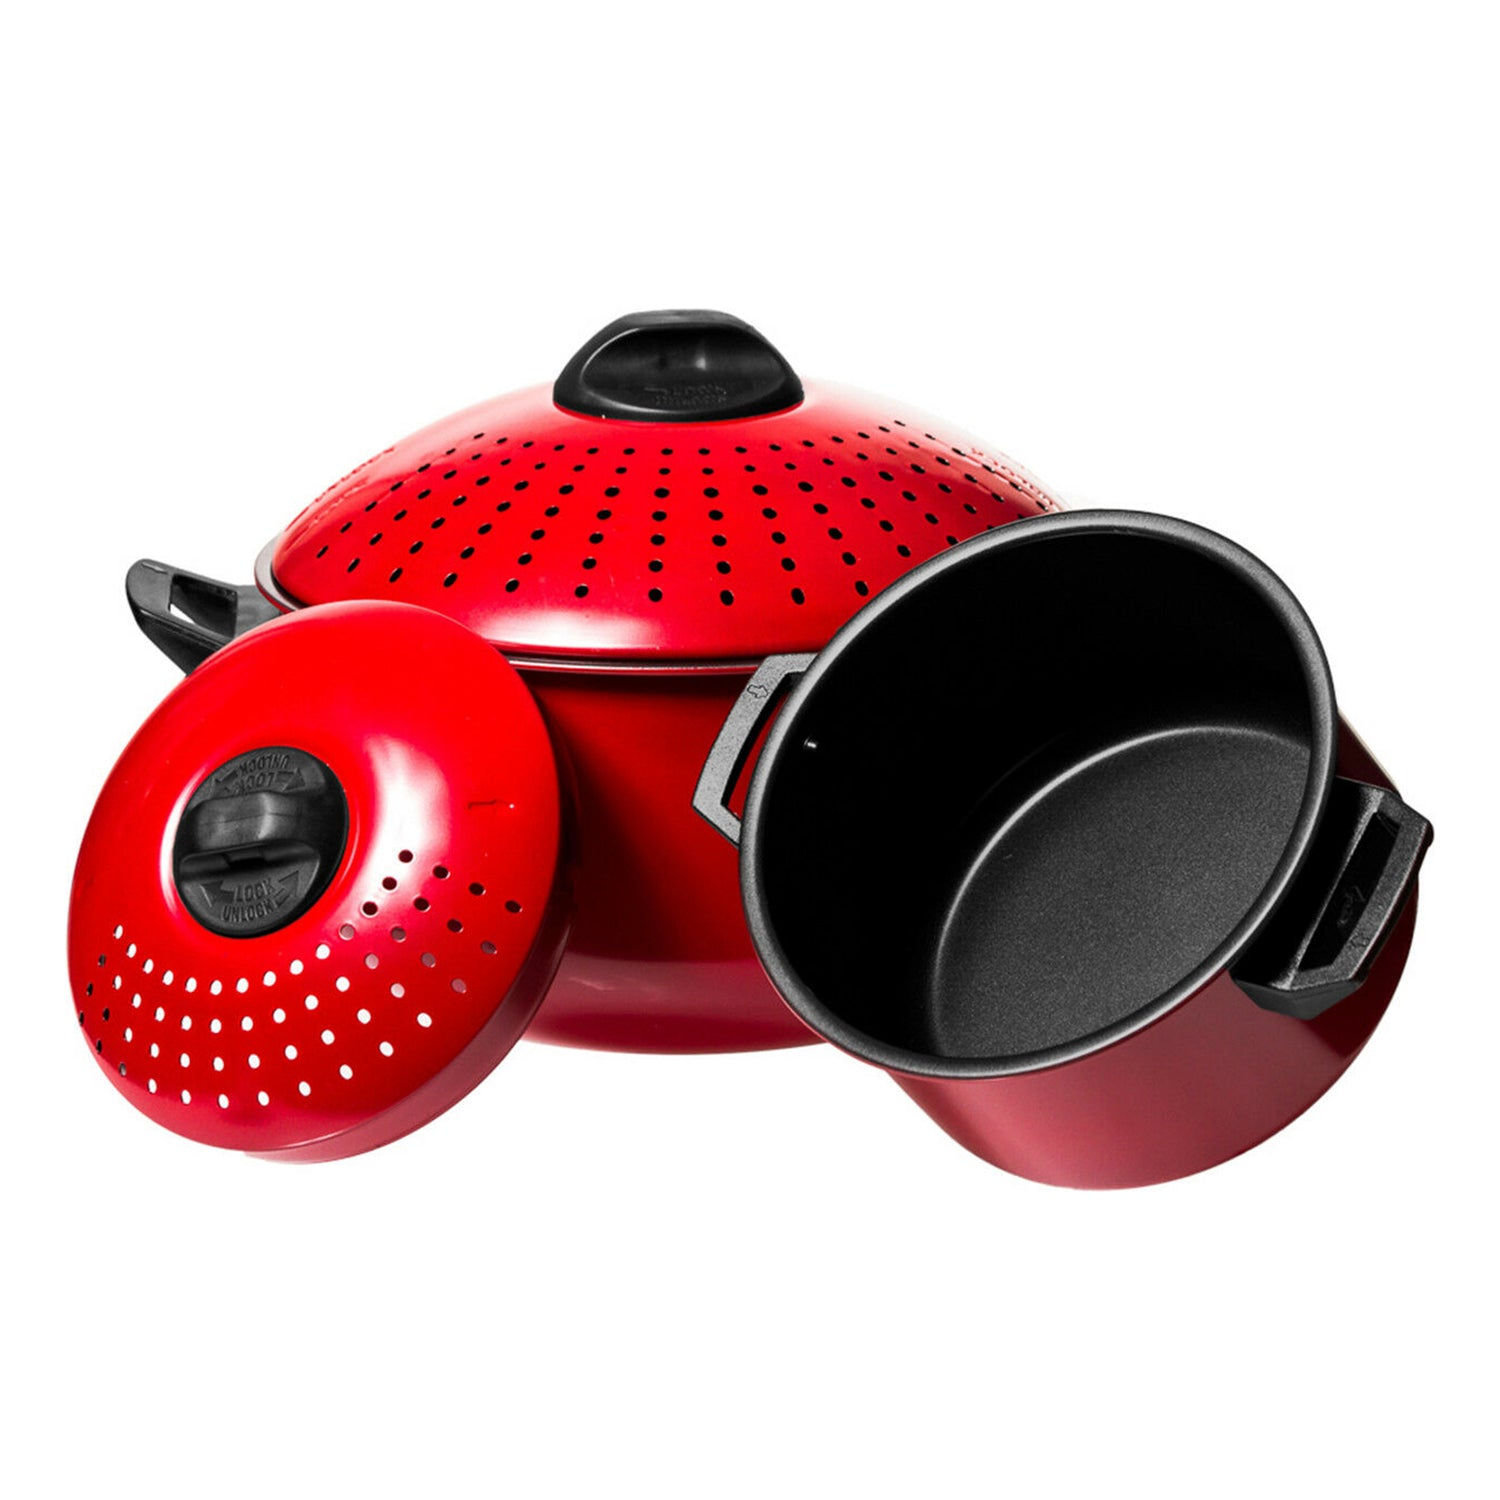 2 Pc Chef Quality Pasta Pot with Strainer Lid - 6 Qt & 2 Qt Red Stock Pot or Pasta Cooker